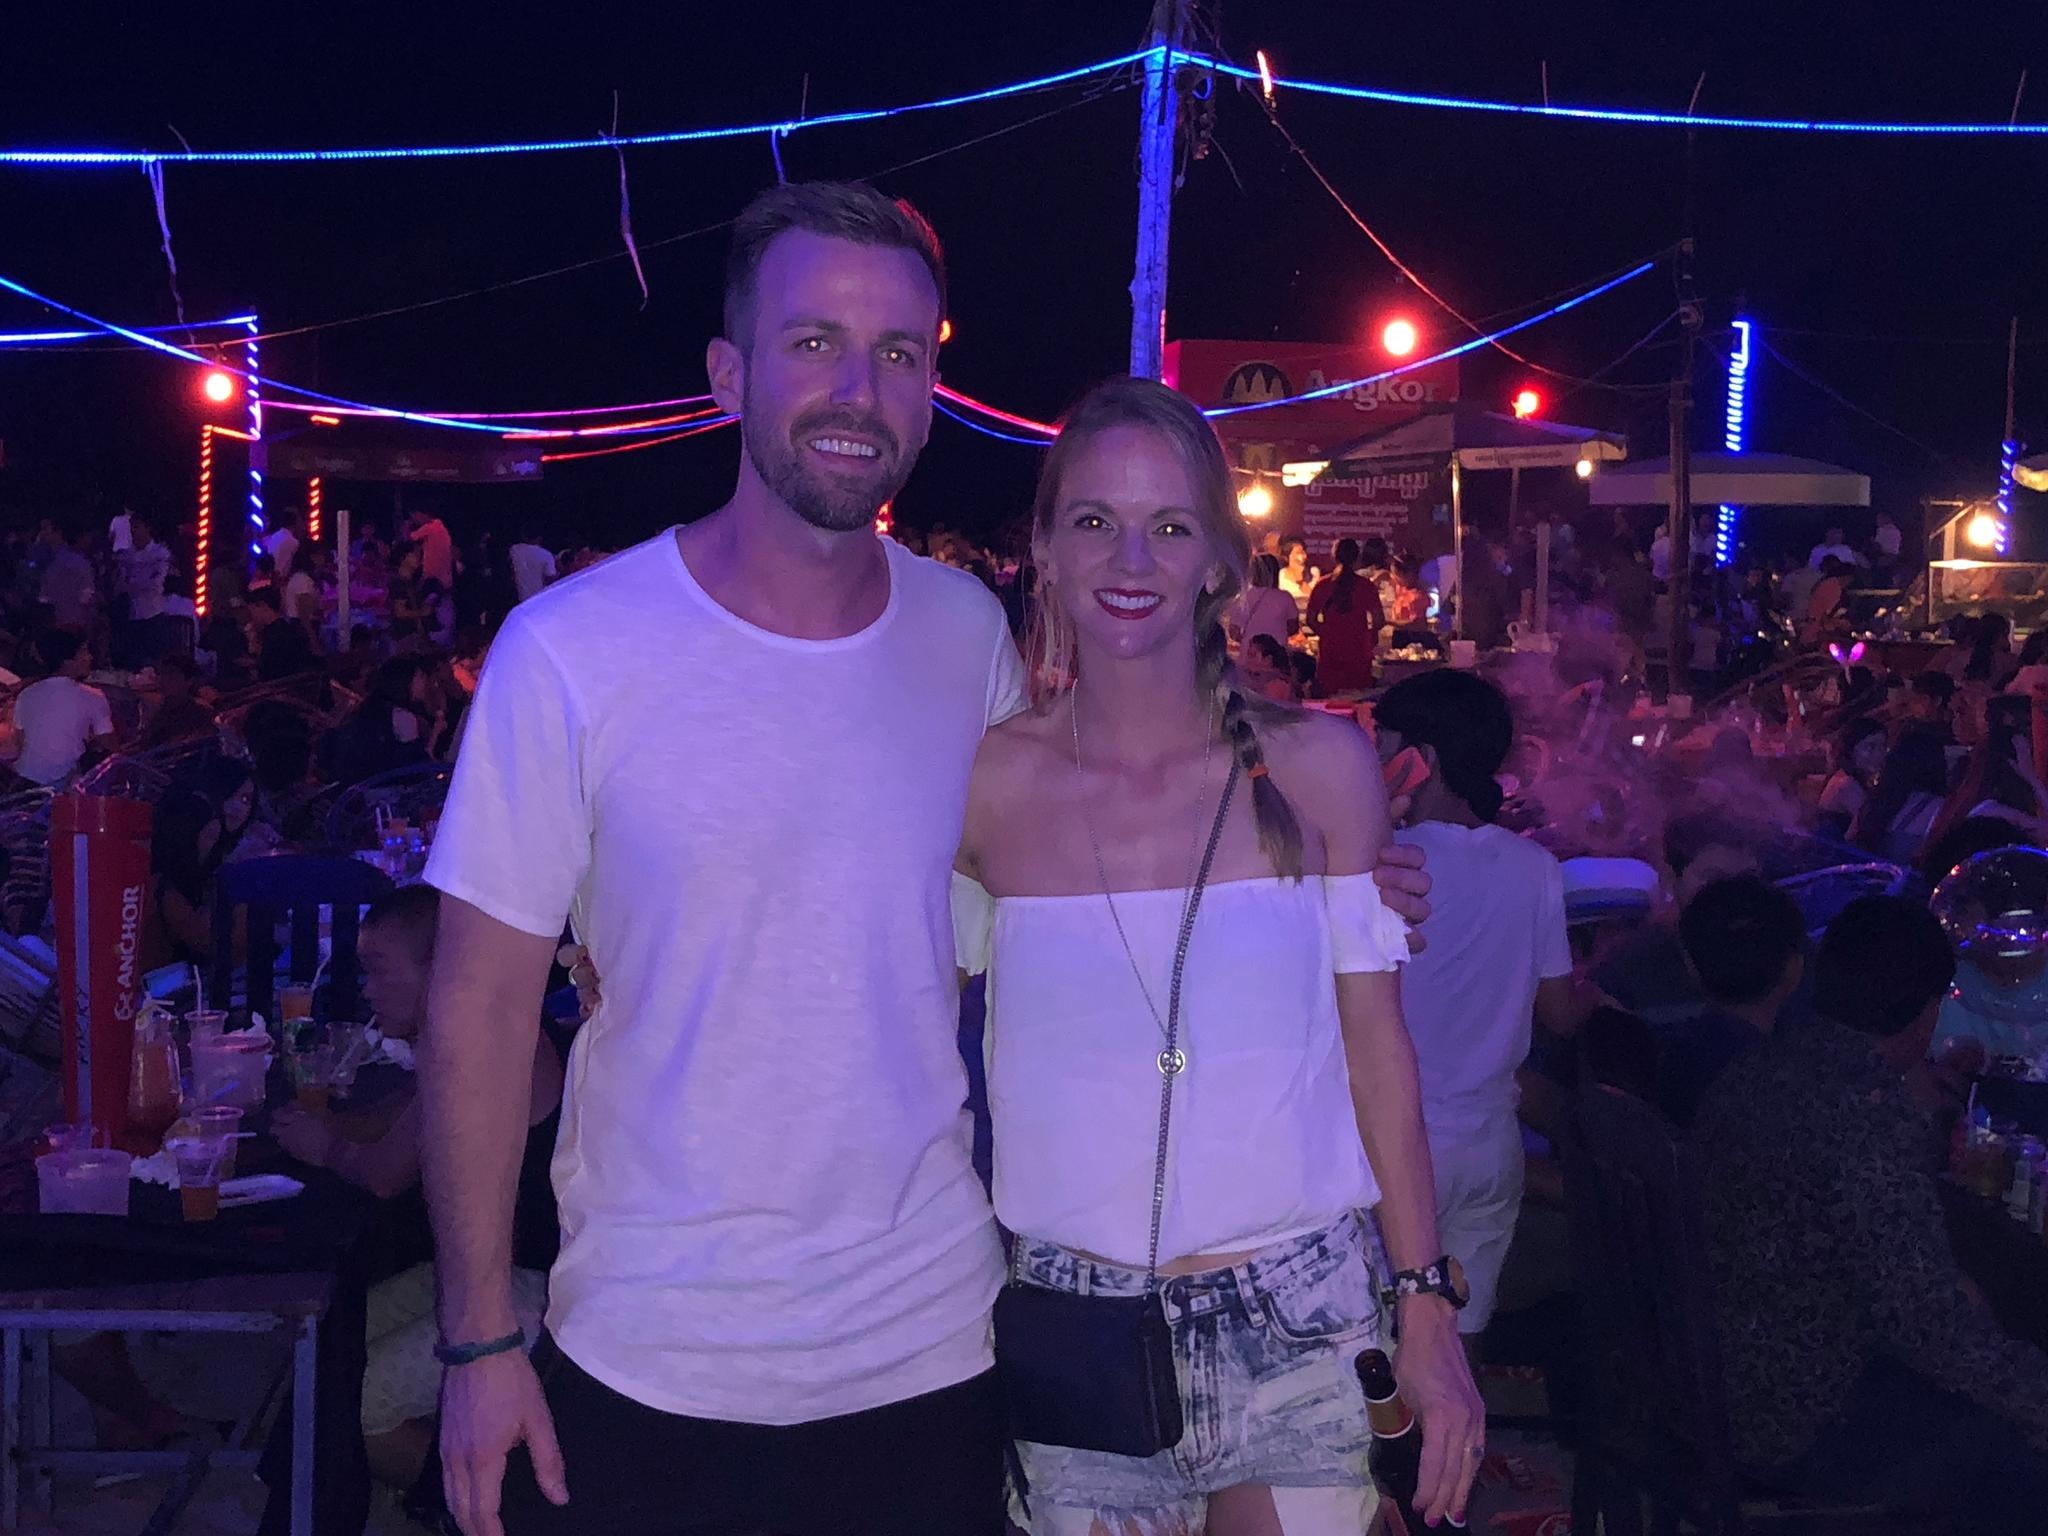 New Year's Eve in Sihanoukville, Cambodia